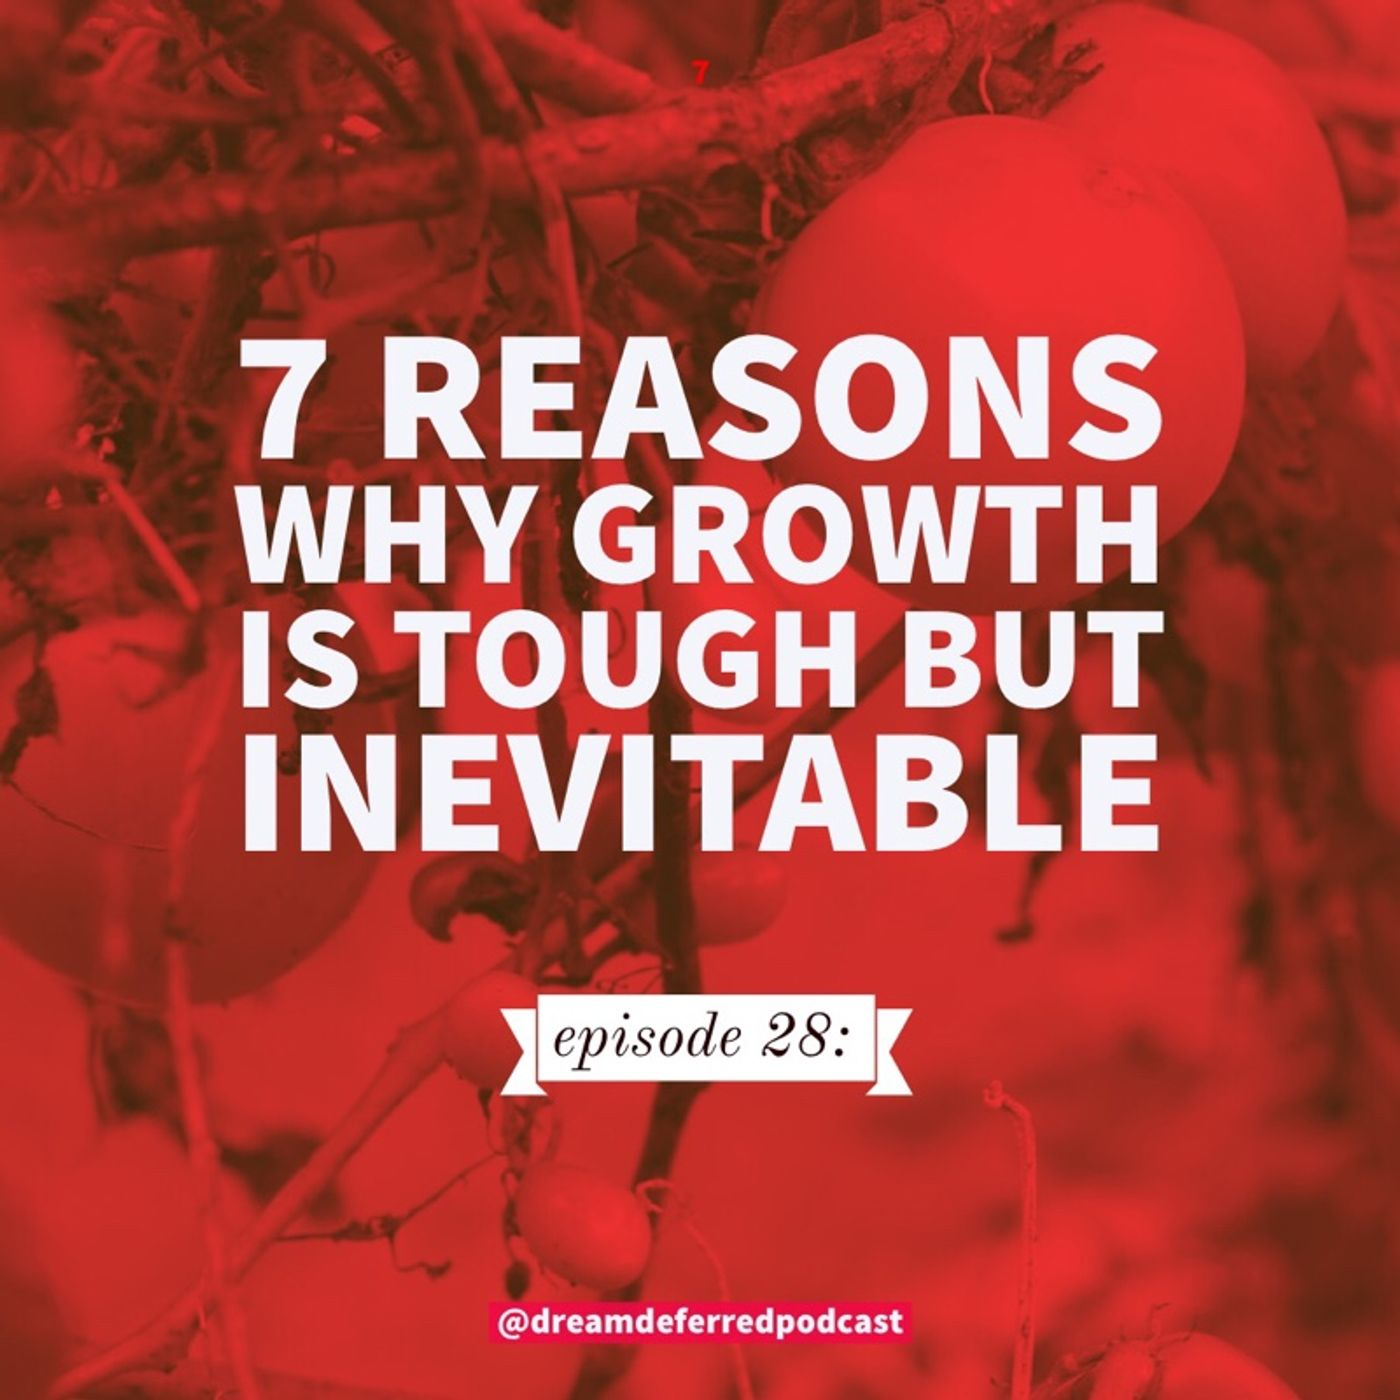 episode 28: 7 reasons why growth is tough but inevitable